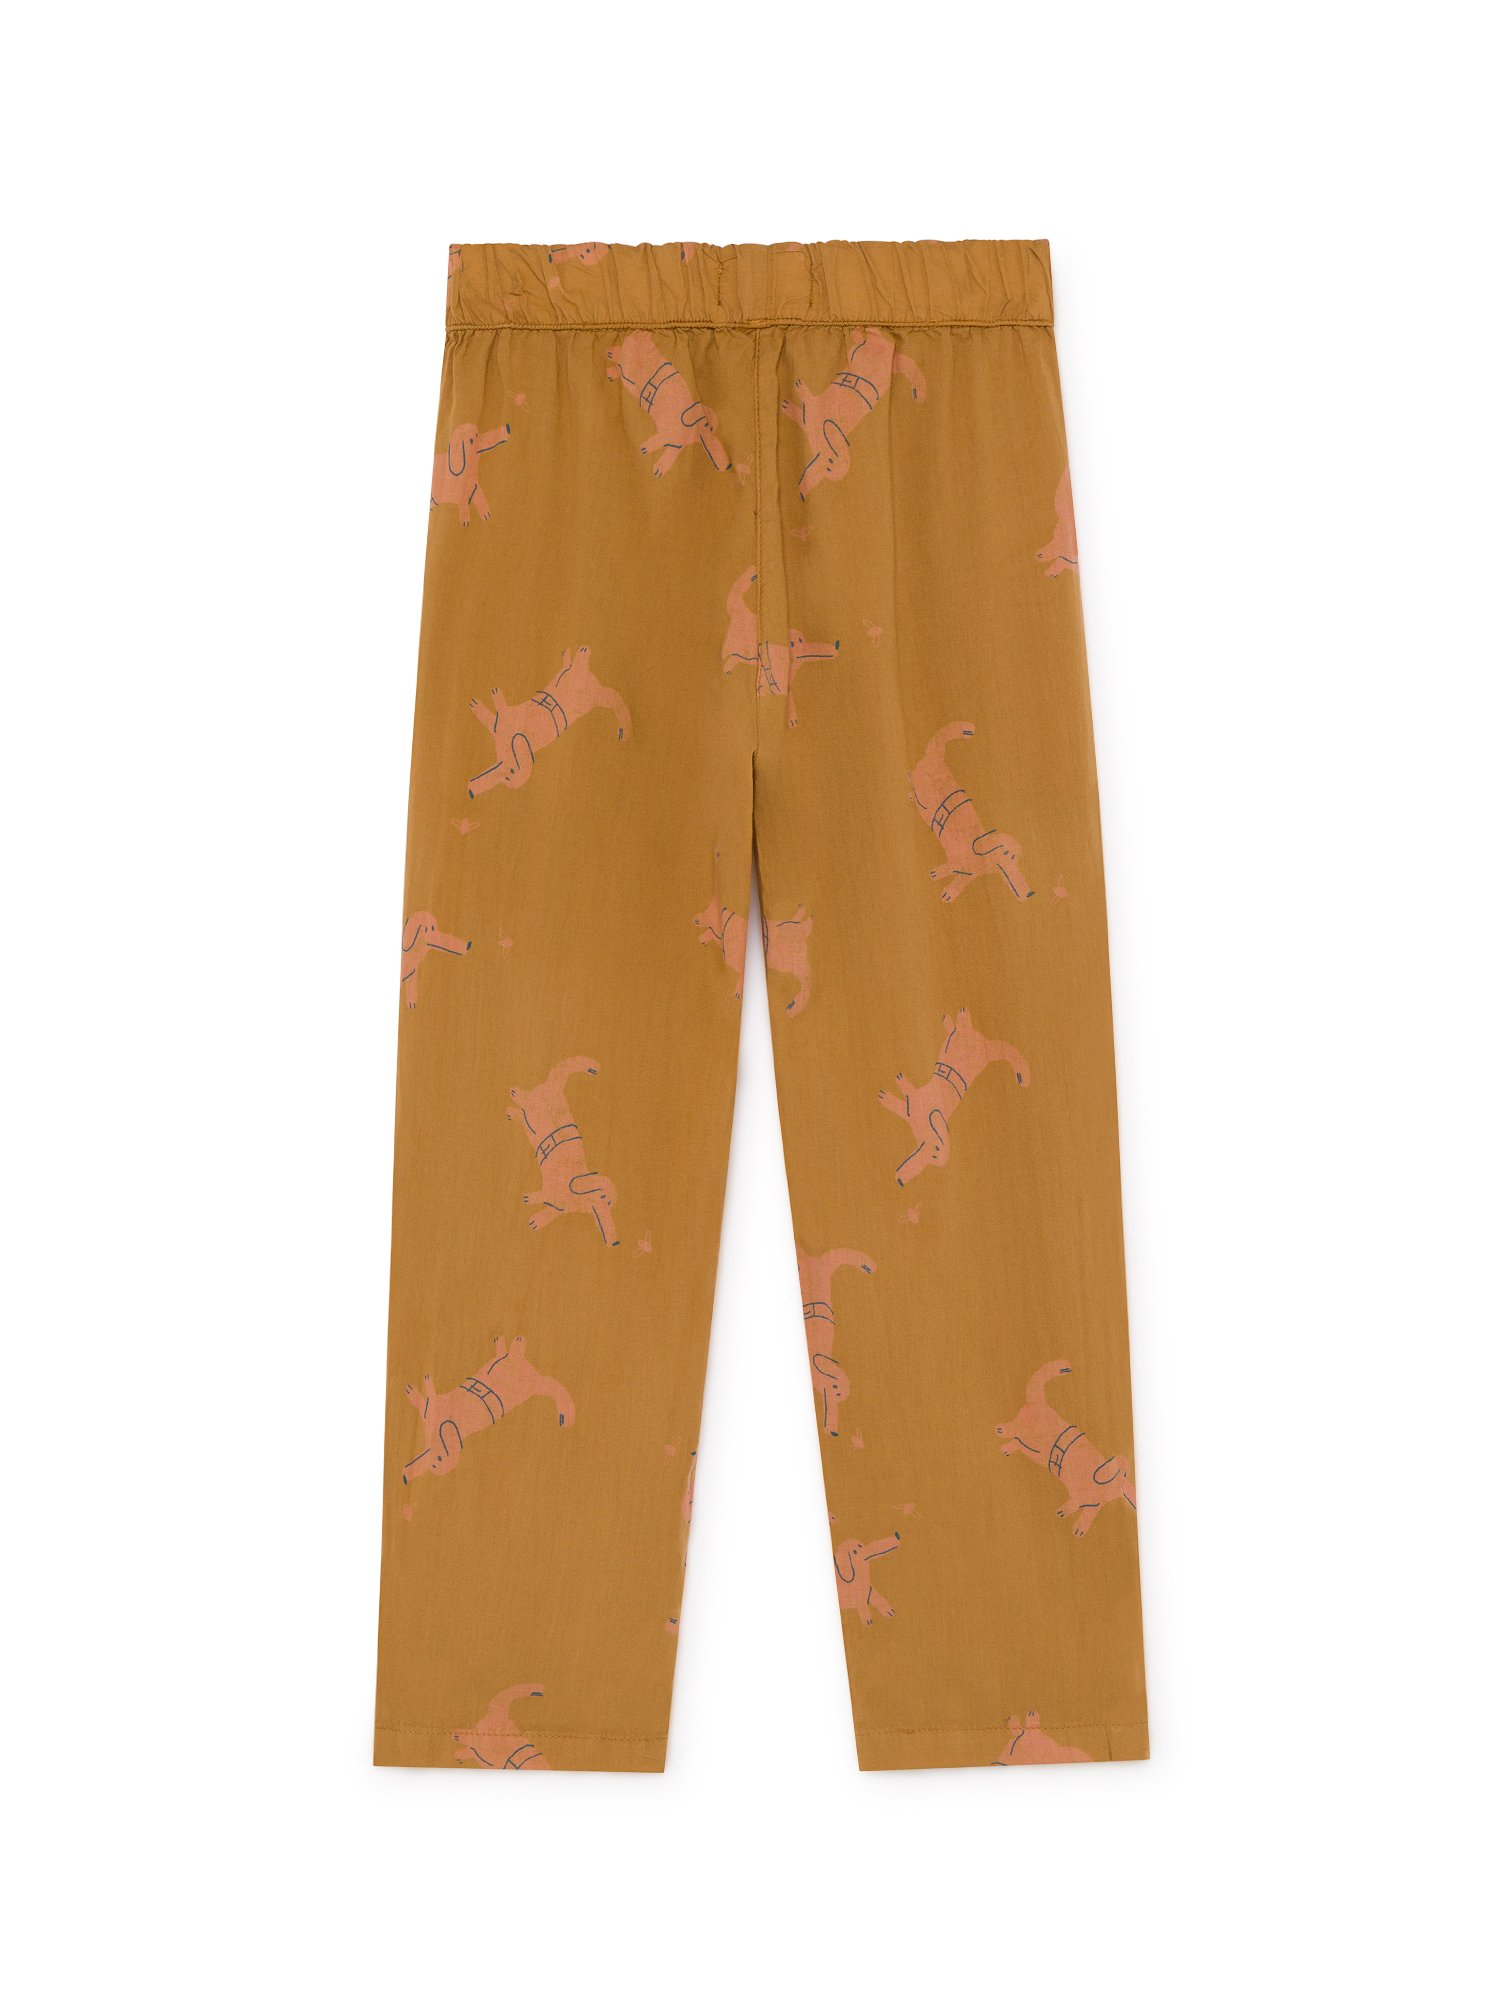 Dogs Trousers